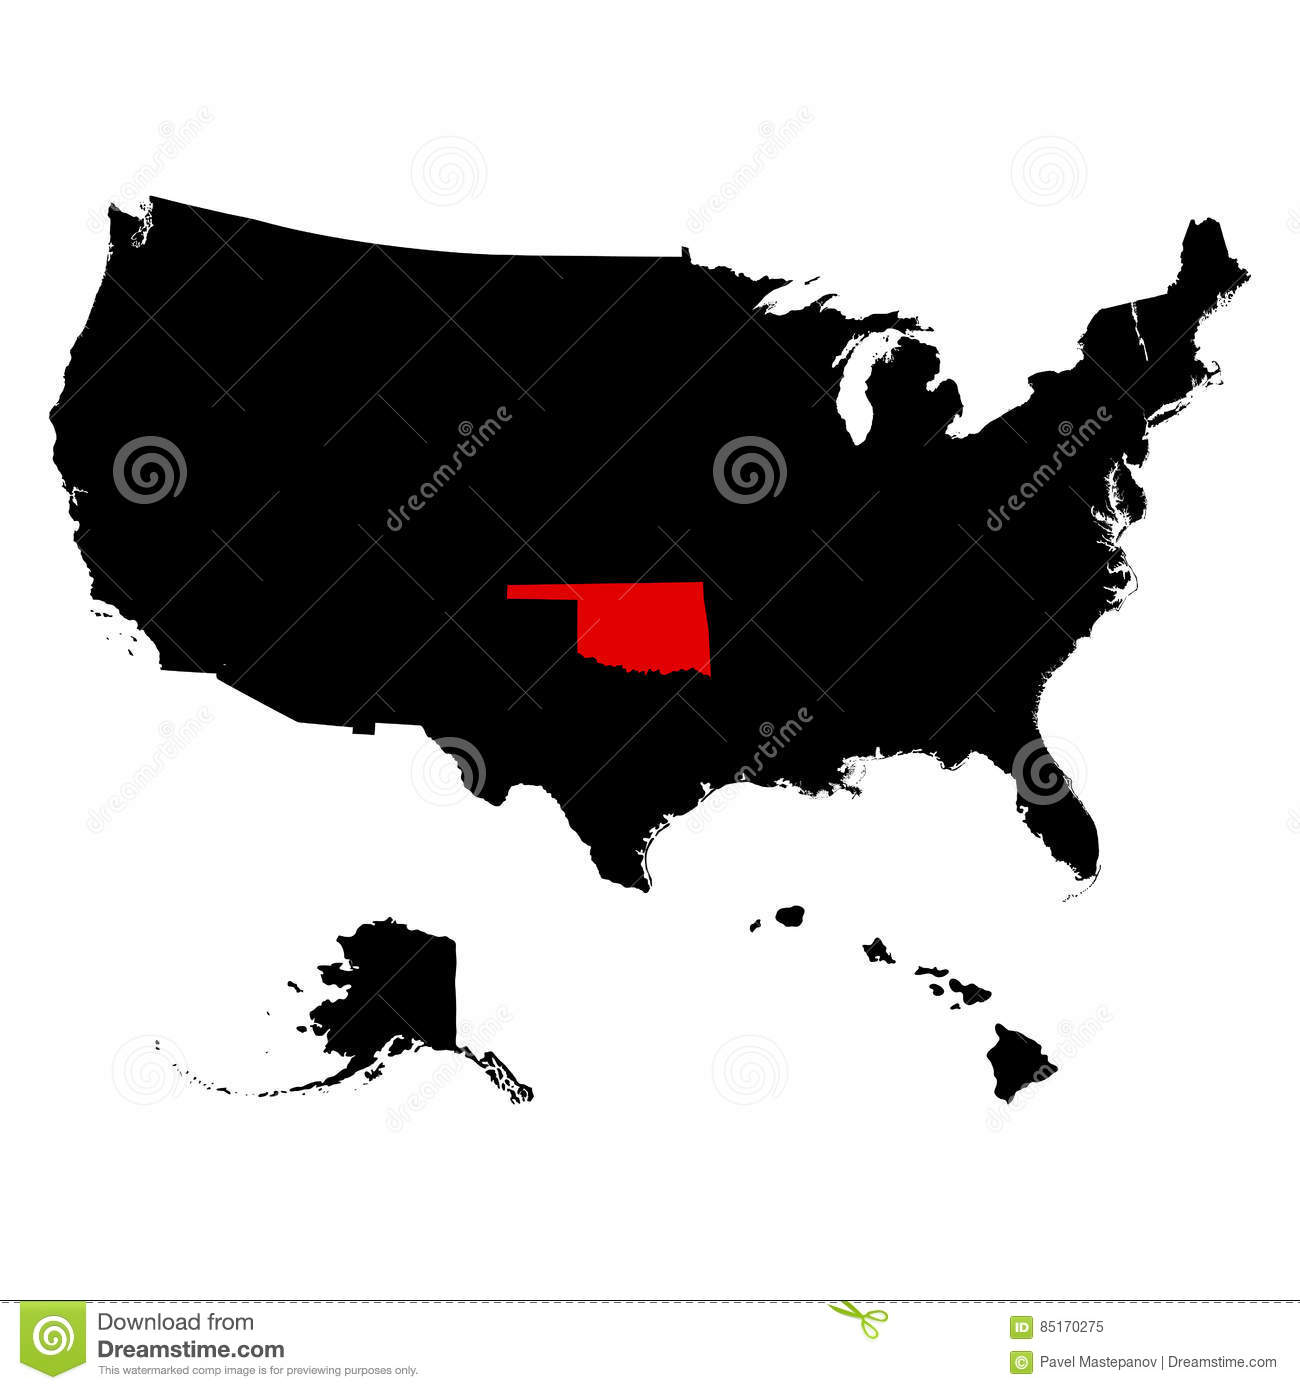 Map Of The U.S. State Oklahoma Stock Vector - Illustration of gray S In Oklahoma Map on